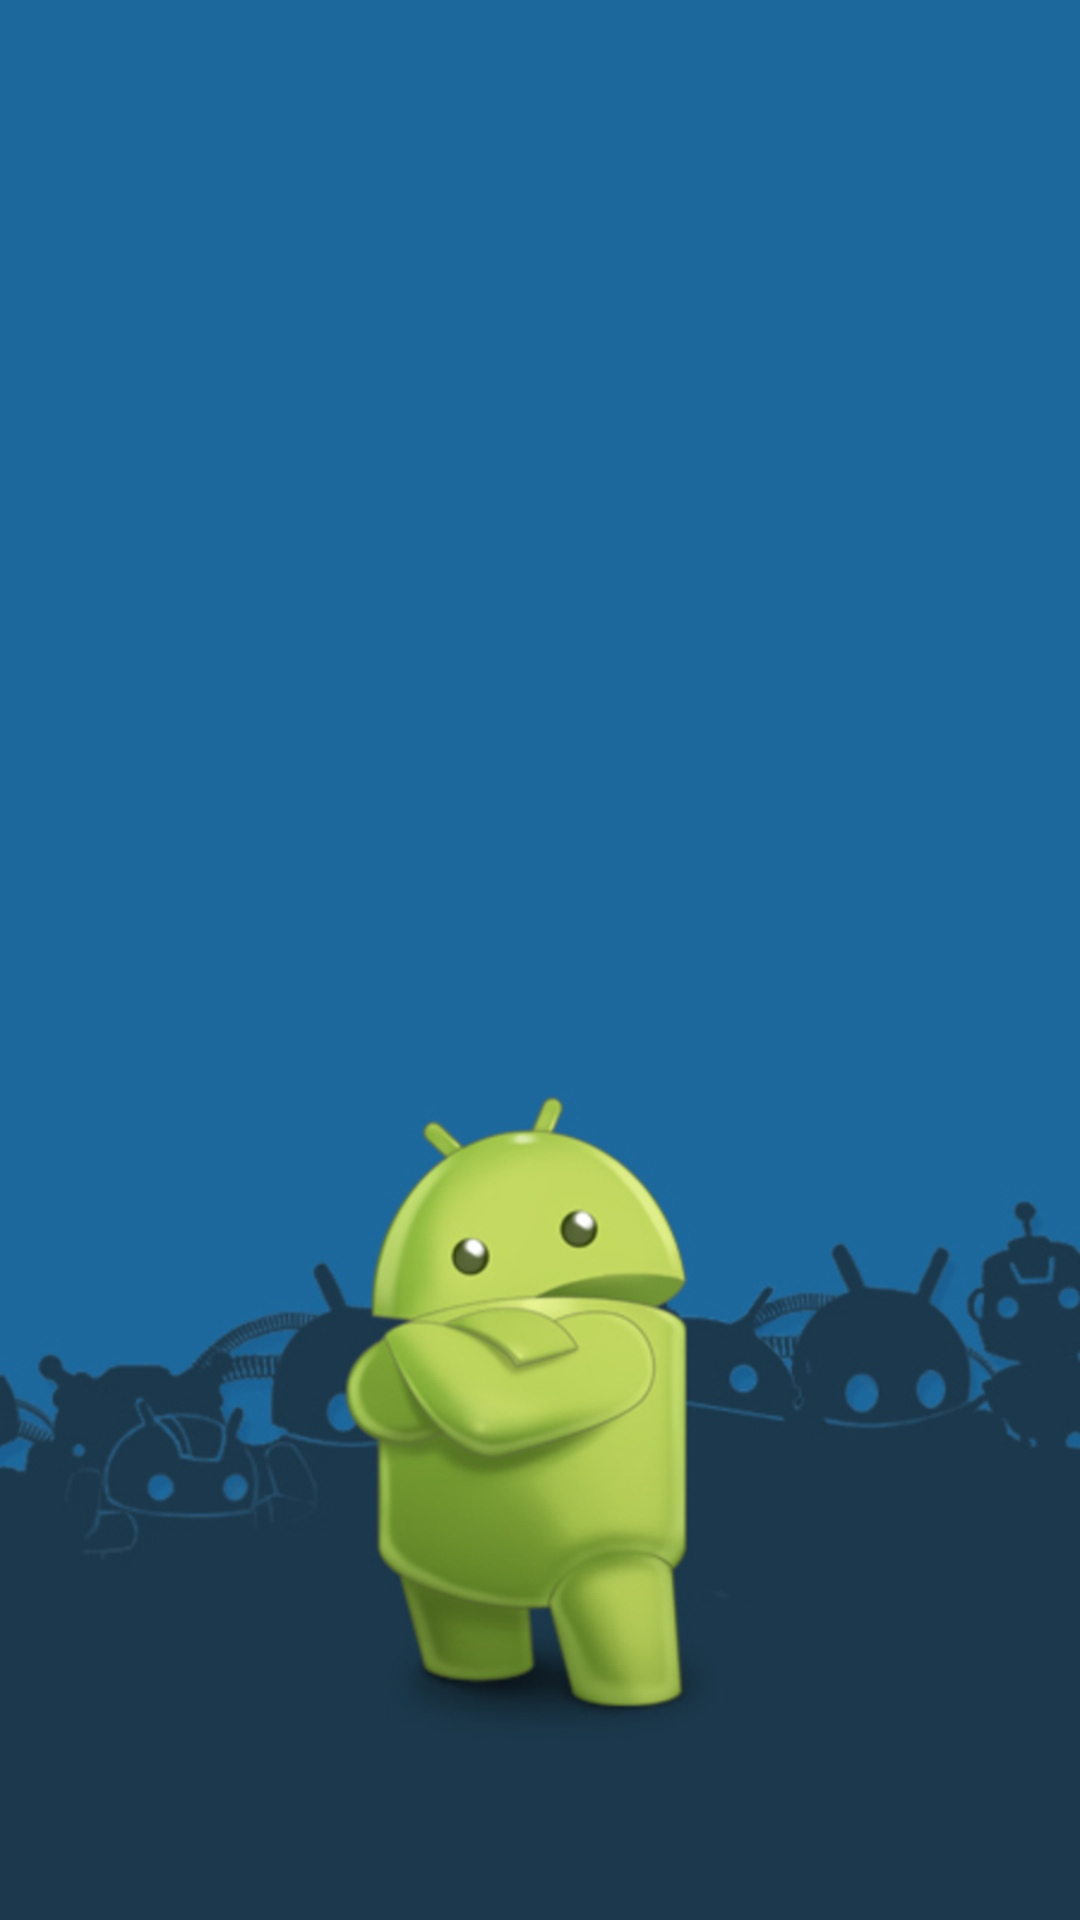 Cool Android Wallpaper Wallpapersafari